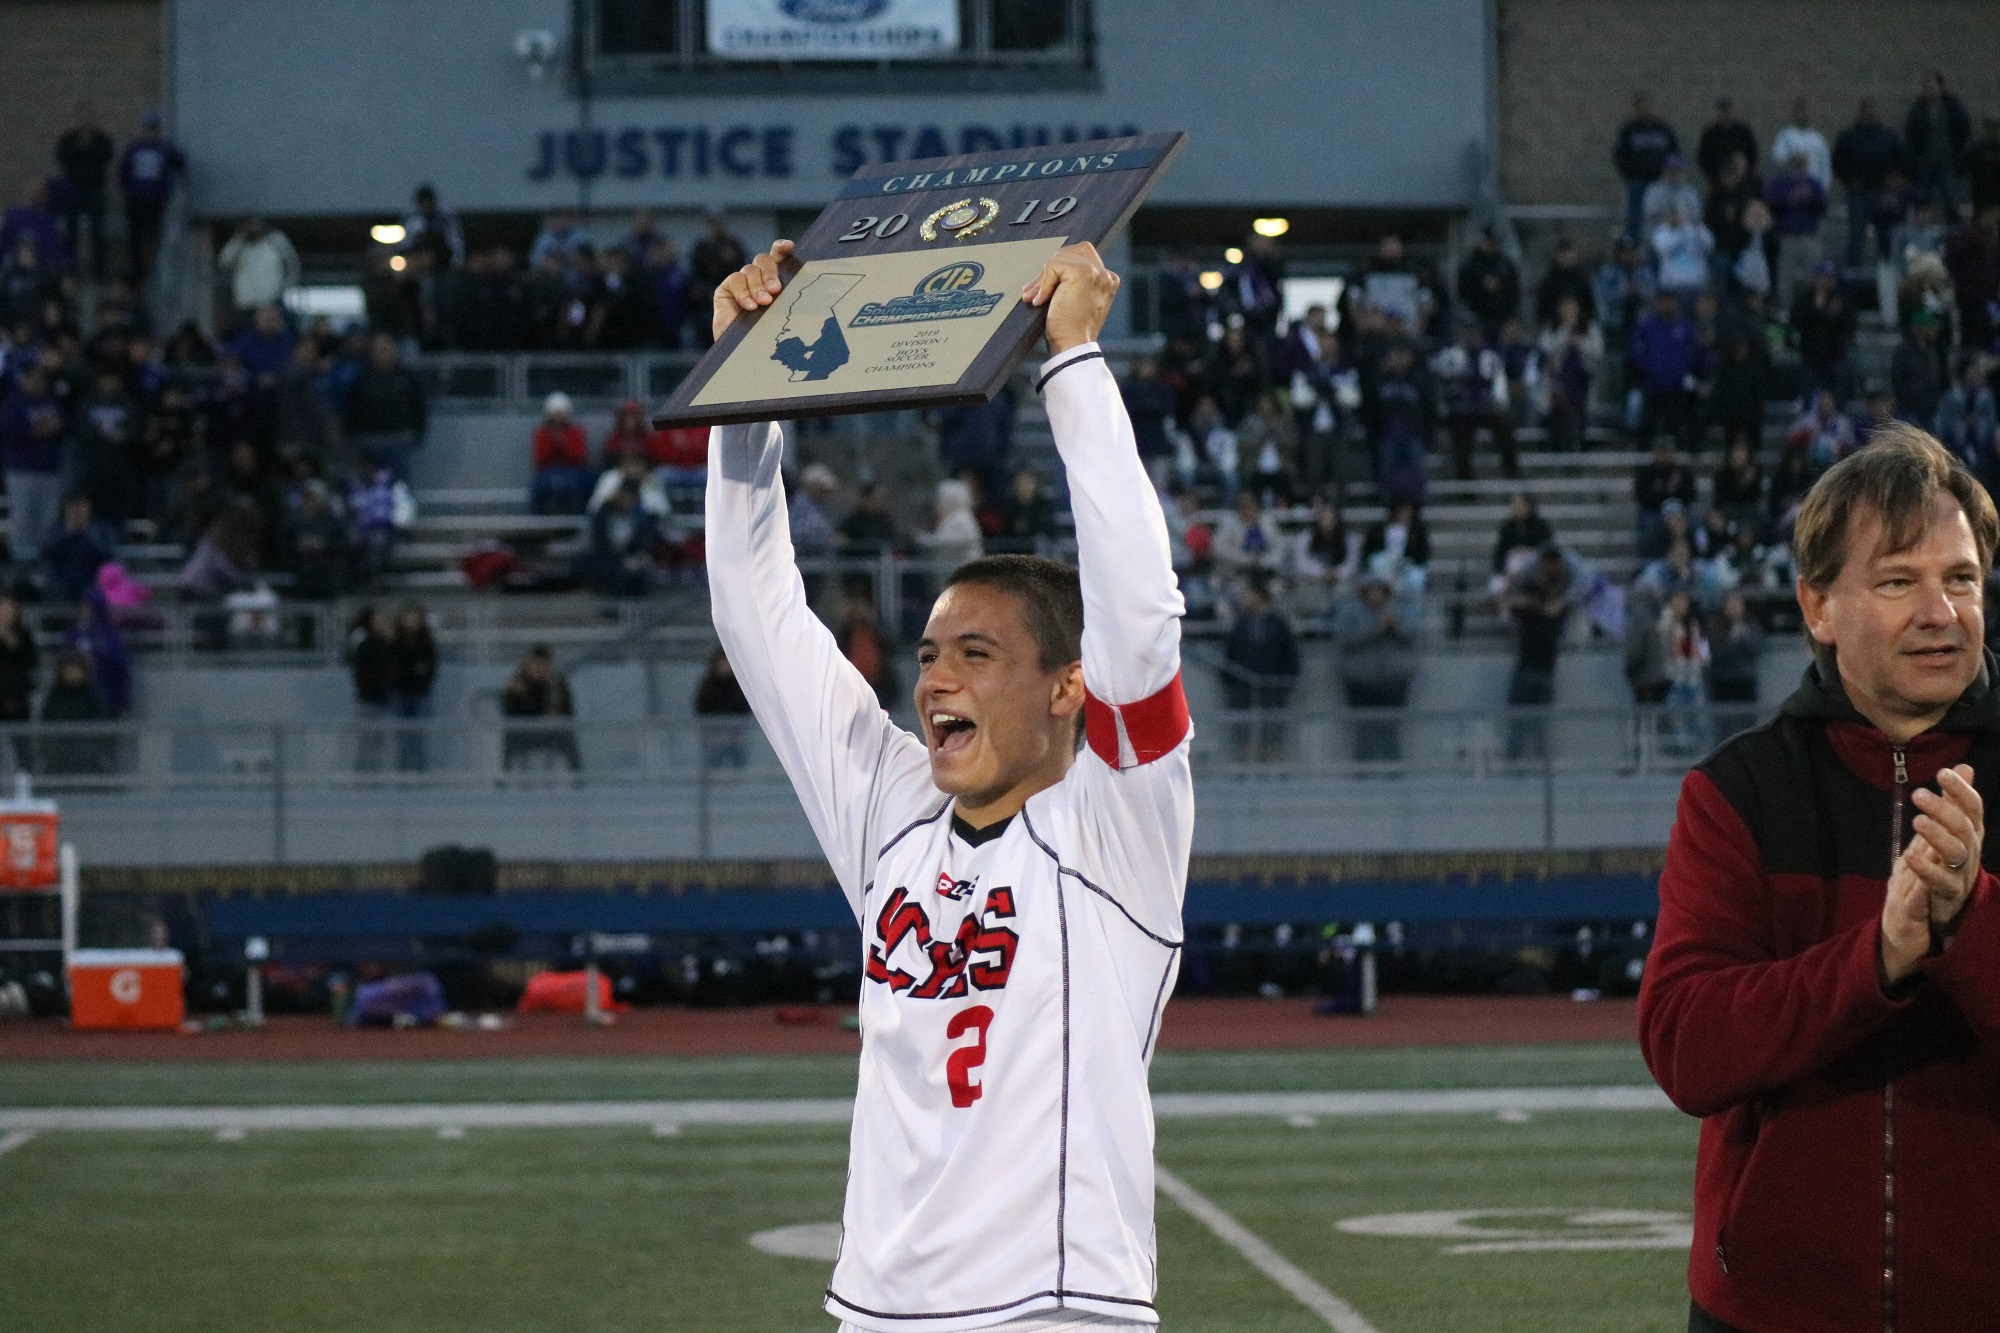 San Clemente boys soccer player Blake Bowen was the second consecutive Triton to be named Gatorade California Player of the Year. Photo: Zach Cavanagh